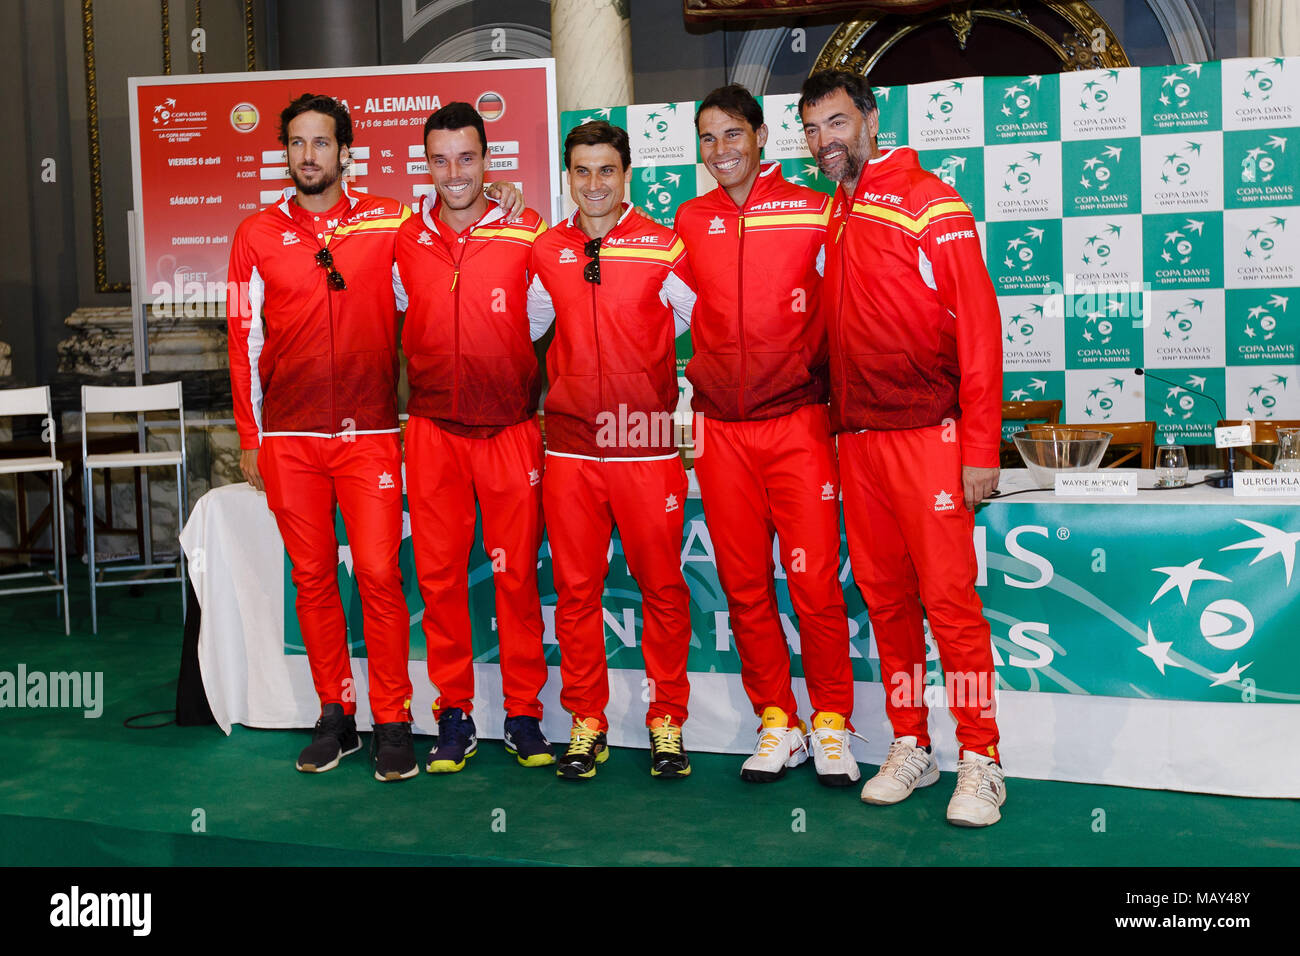 ¿Cuánto mide Roberto Bautista? - Altura - Real height Valencia-spain-5th-april-2018-the-spanish-team-with-rafael-nadal-david-ferrer-roberto-bautista-agut-feliciano-lopez-and-coach-sergi-bruguera-during-the-draw-ceremony-before-the-davis-cup-quarterfinal-match-between-spain-and-germany-at-the-plaza-de-torros-credit-frank-molteralamy-live-news-MAY48Y